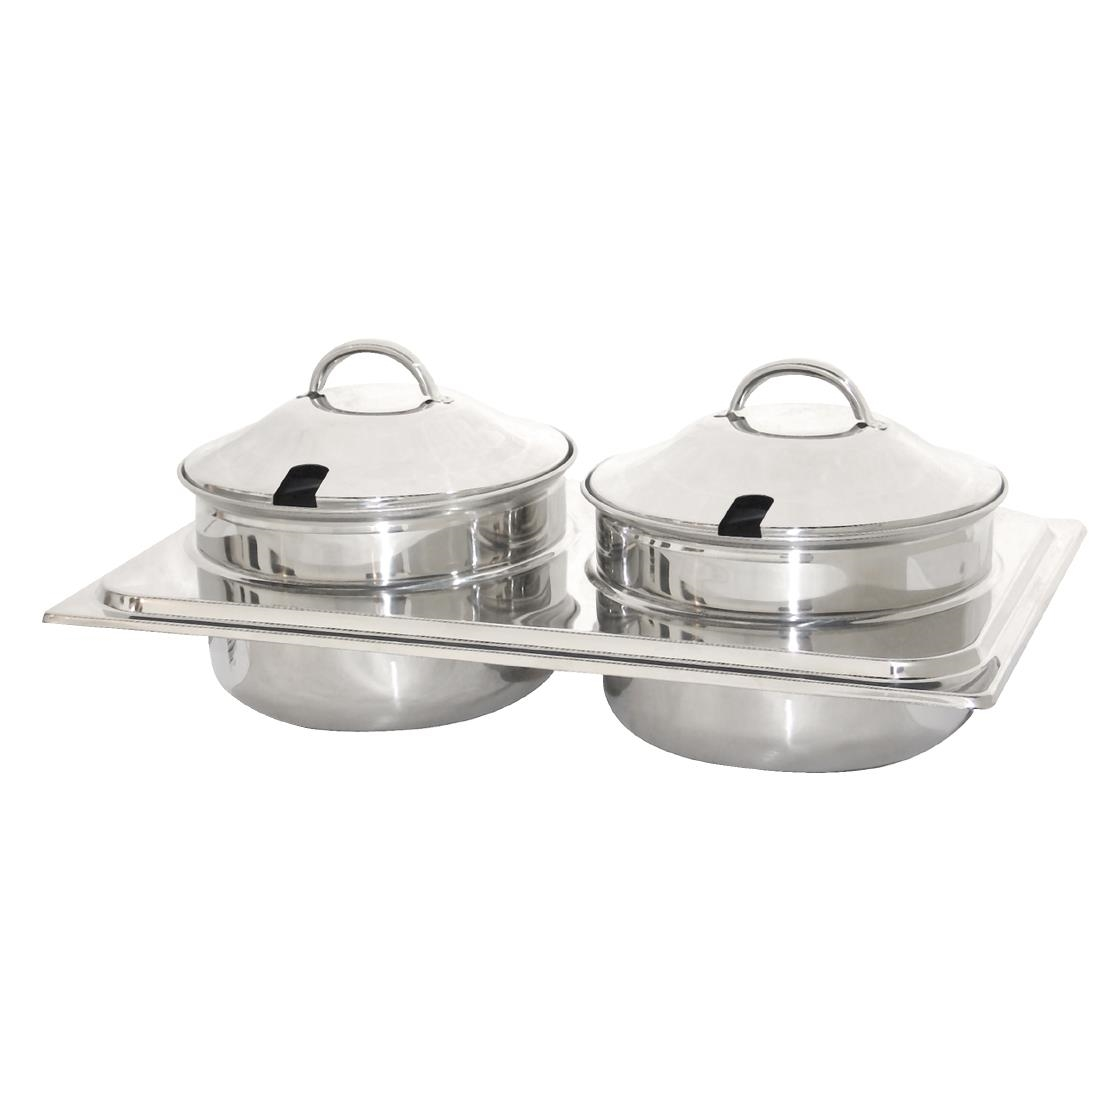 Image of Bain Marie Set for Chafing Dish